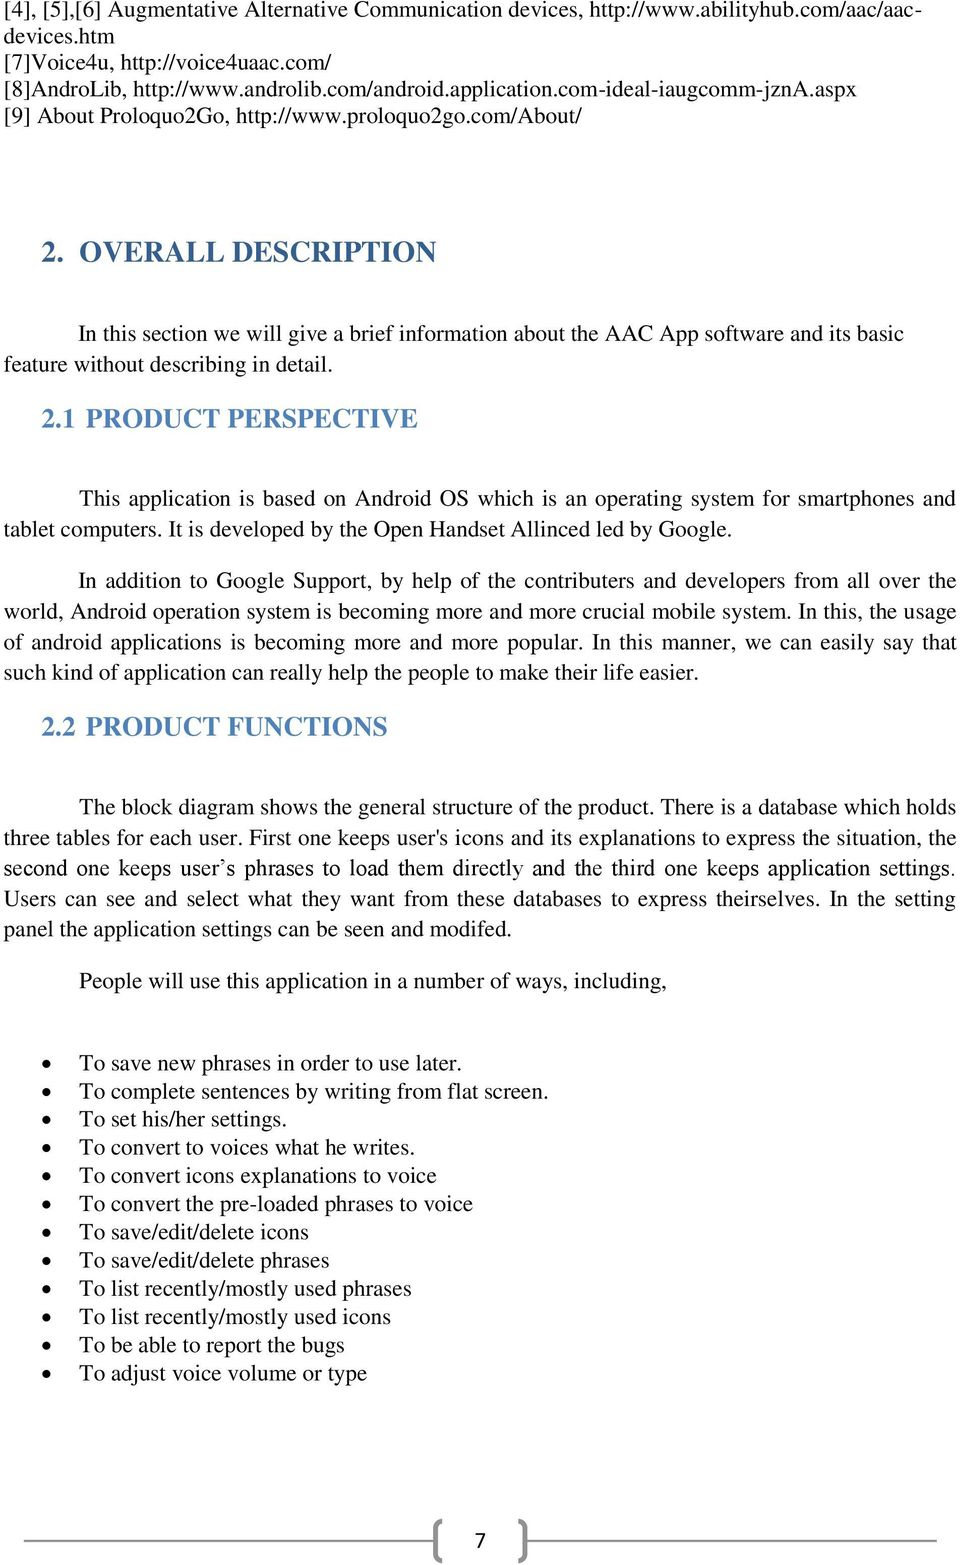 OVERALL DESCRIPTION In this section we will give a brief information about the AAC App software and its basic feature without describing in detail. 2.